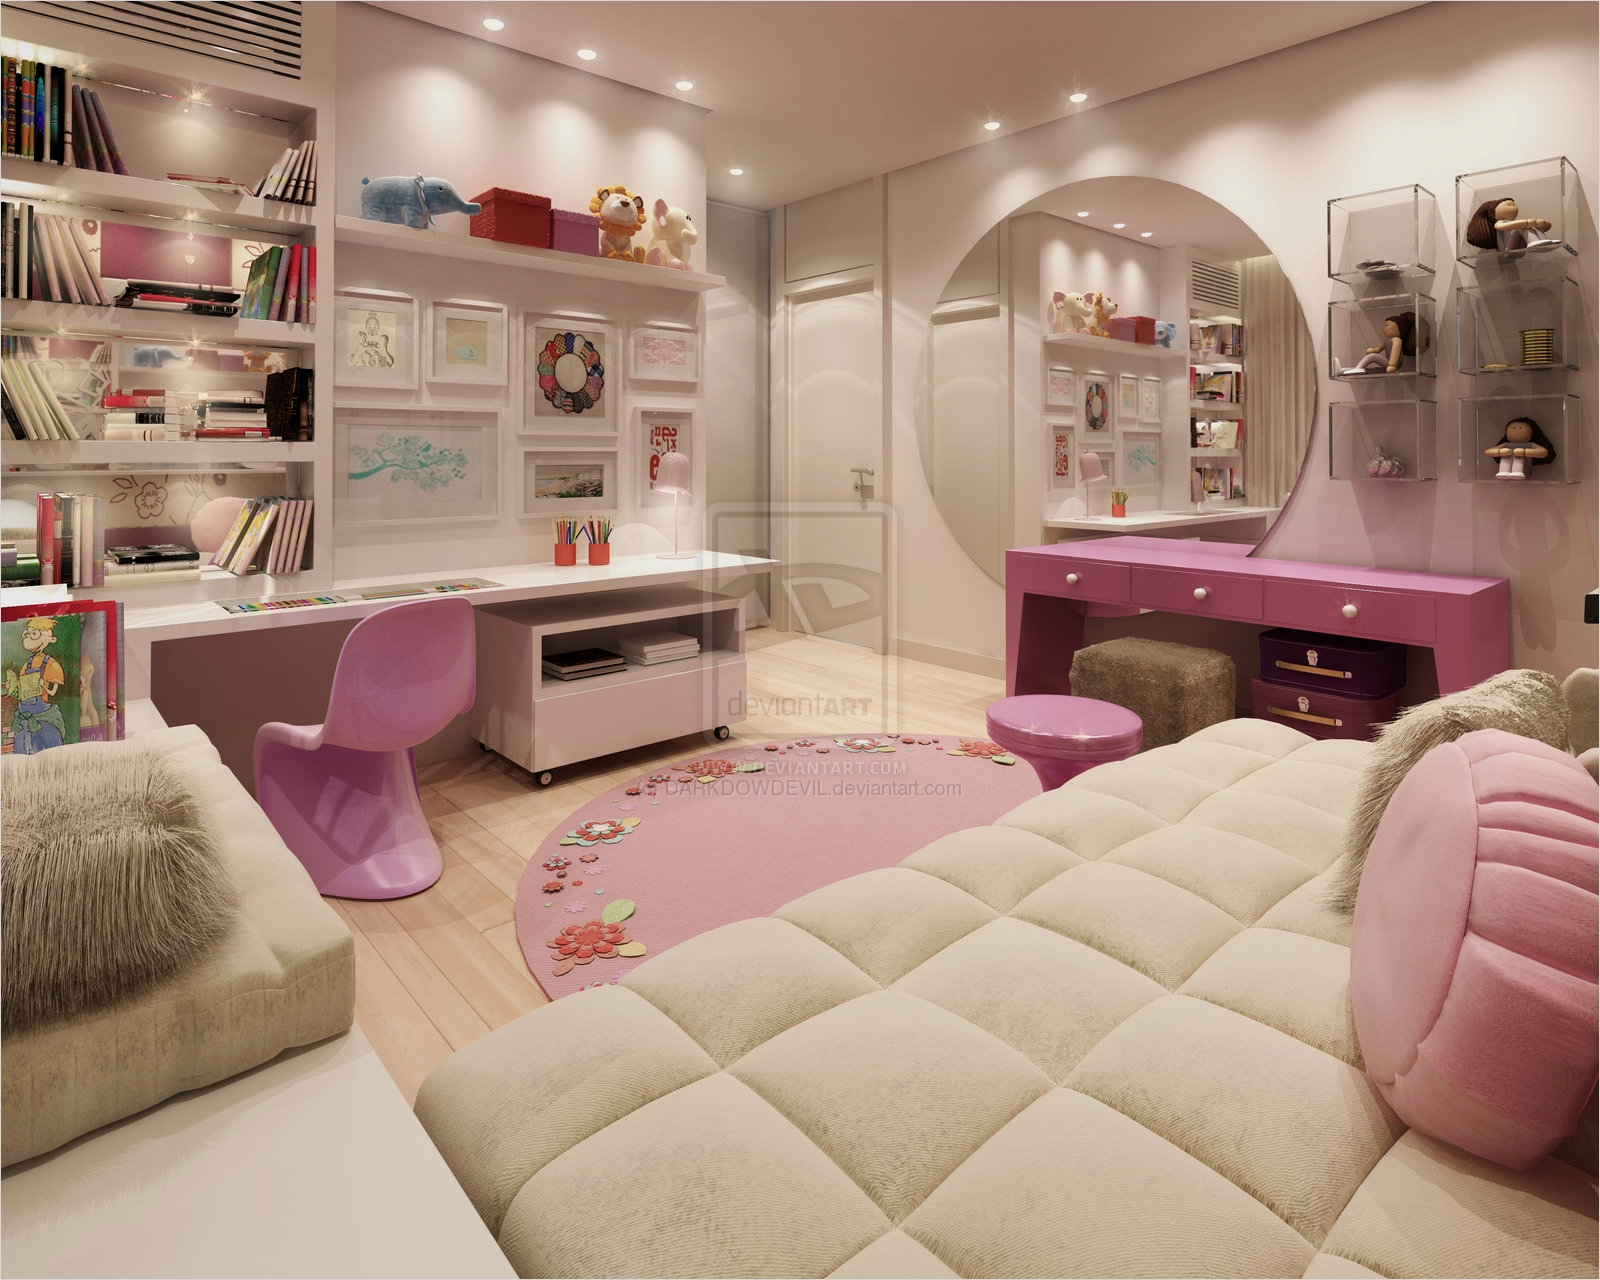 42 Stylish Bedrooms for Teenage Girls 37 top 21 Modern Bedrooms for 2014 Qnud 6